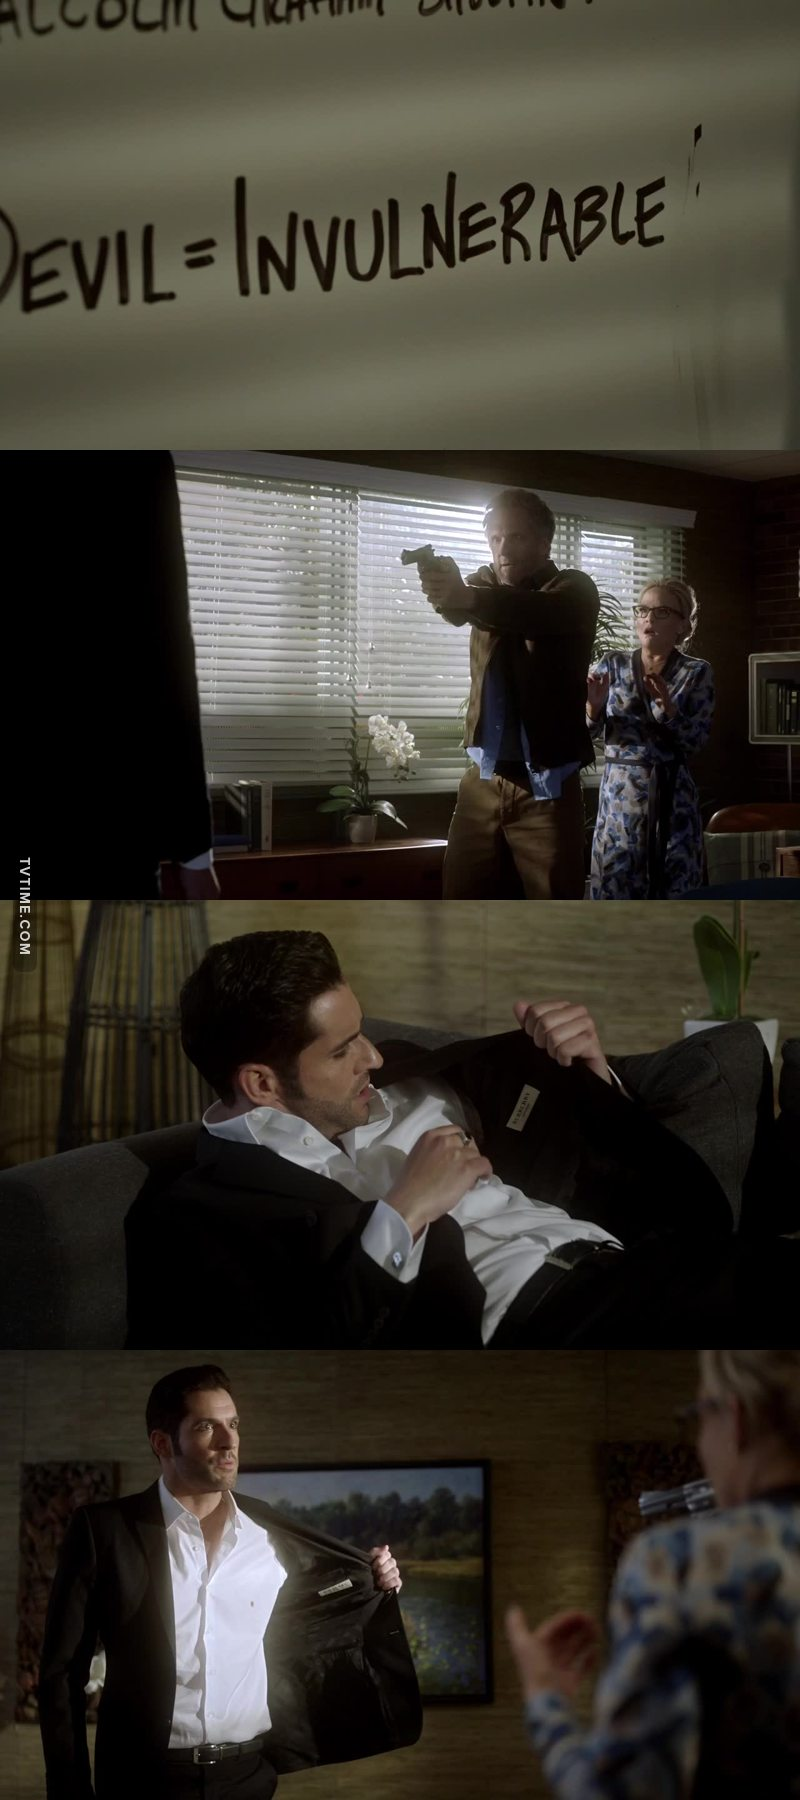 Only Lucifer would be more worried about his clothes than being shot. 😂